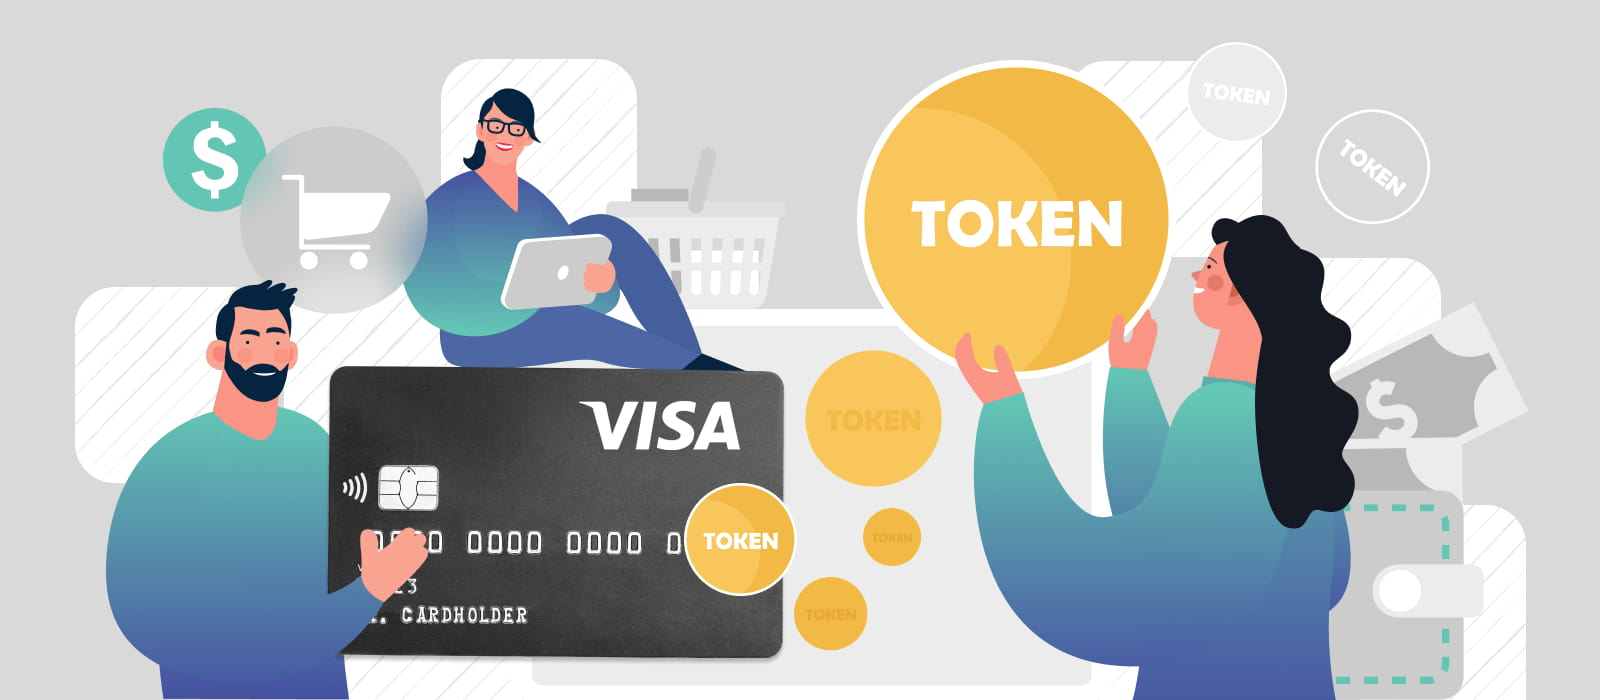 People holding a visa credit card next to tokens and eCommerce icons